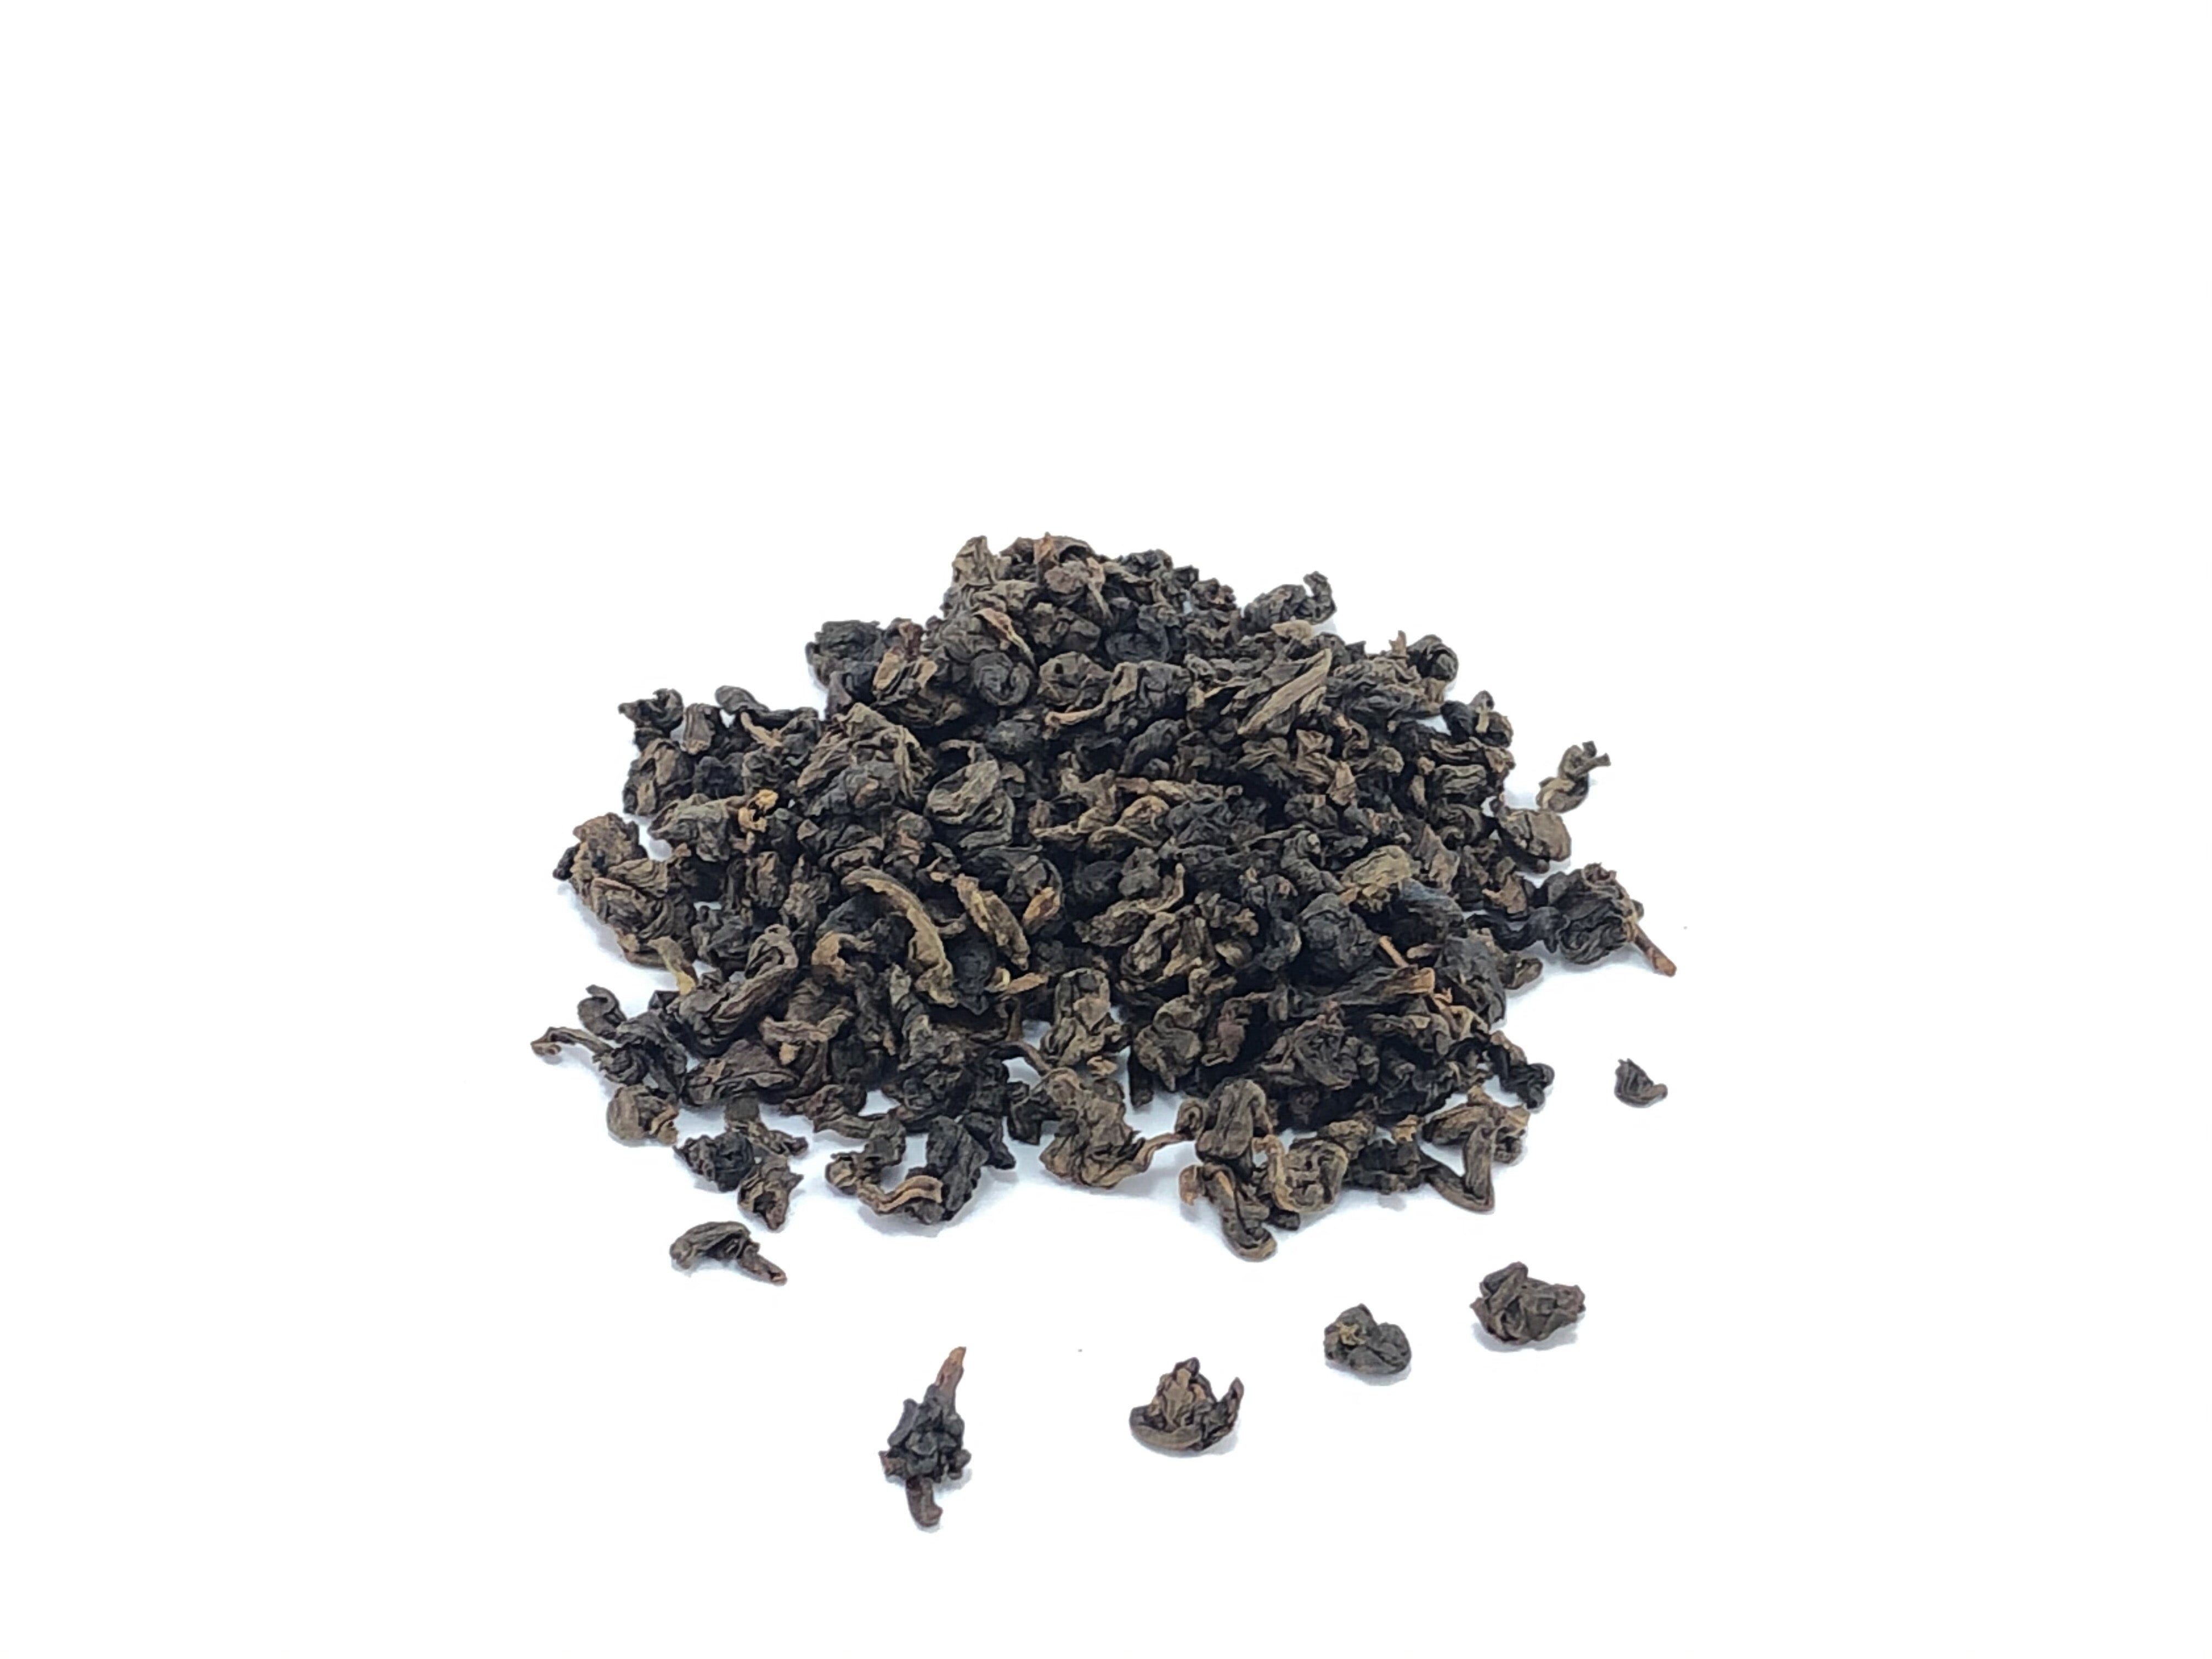 Aged 1980s Oolong